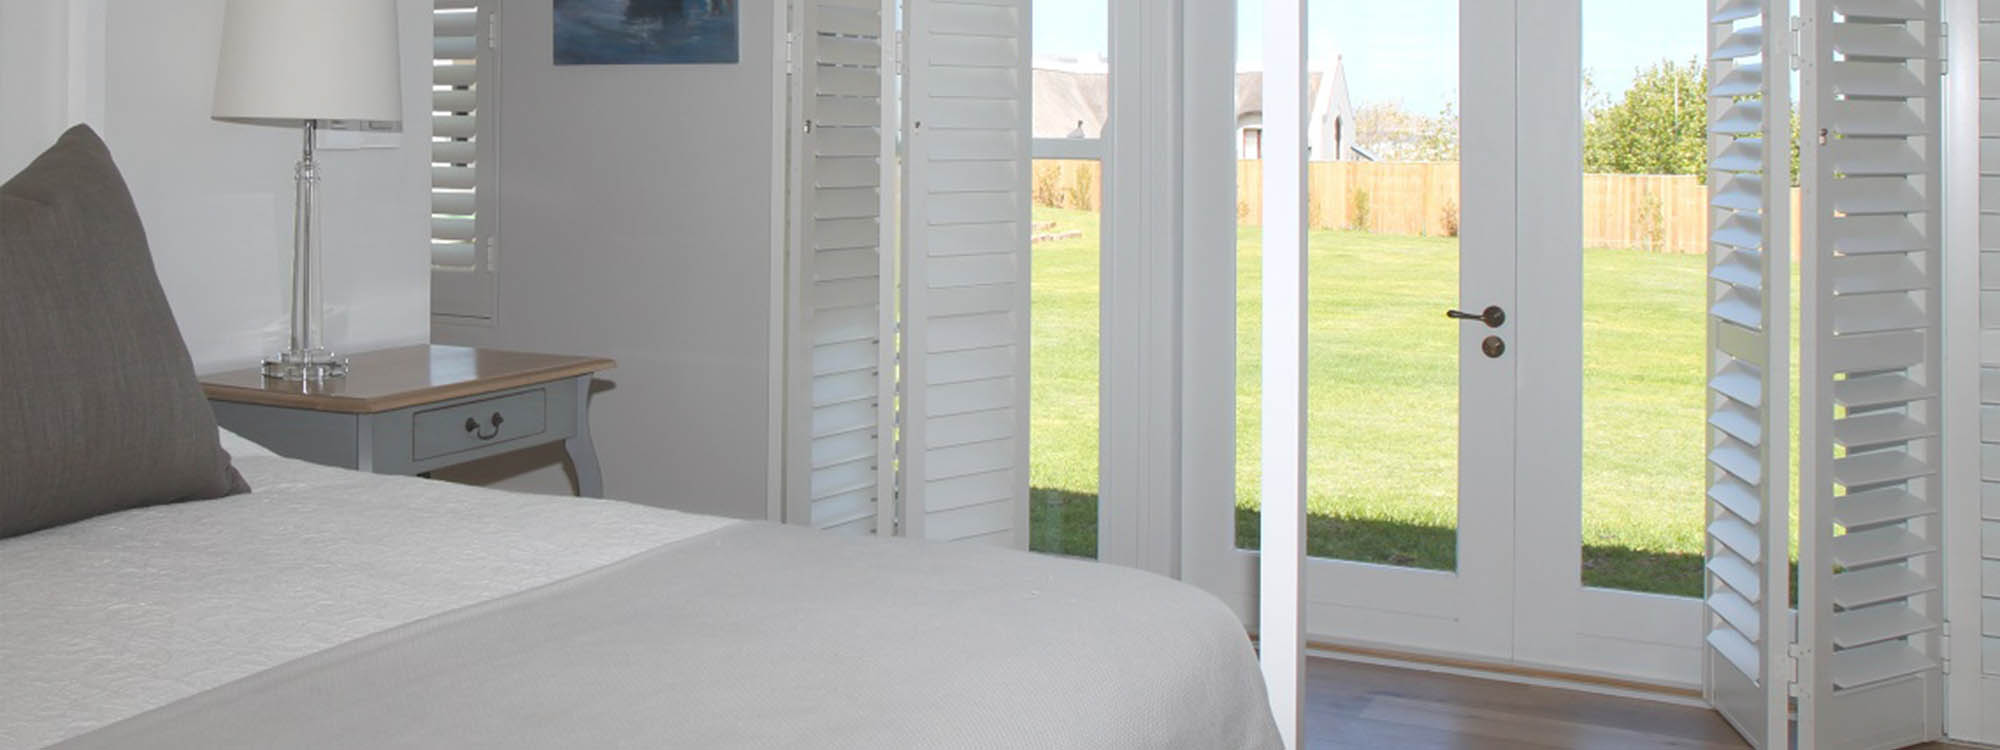 Security-shutters-bedroom-satin-white